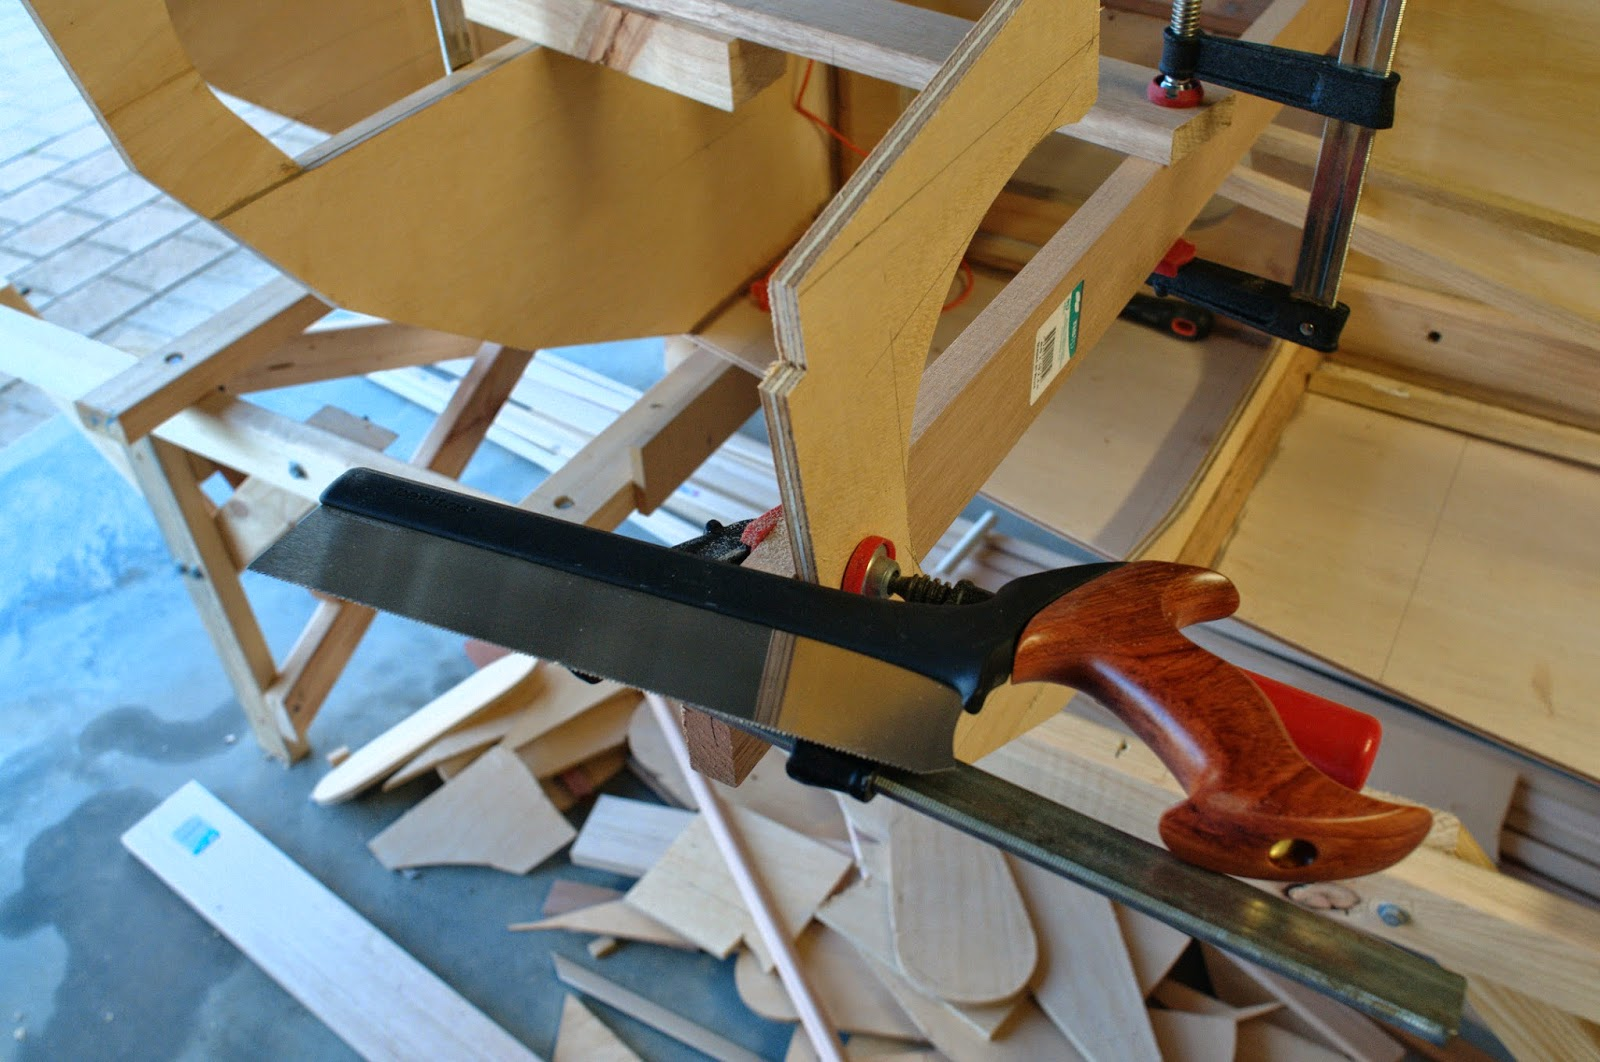 Suzy's Blog: Buying expensive tools and bling, getting on